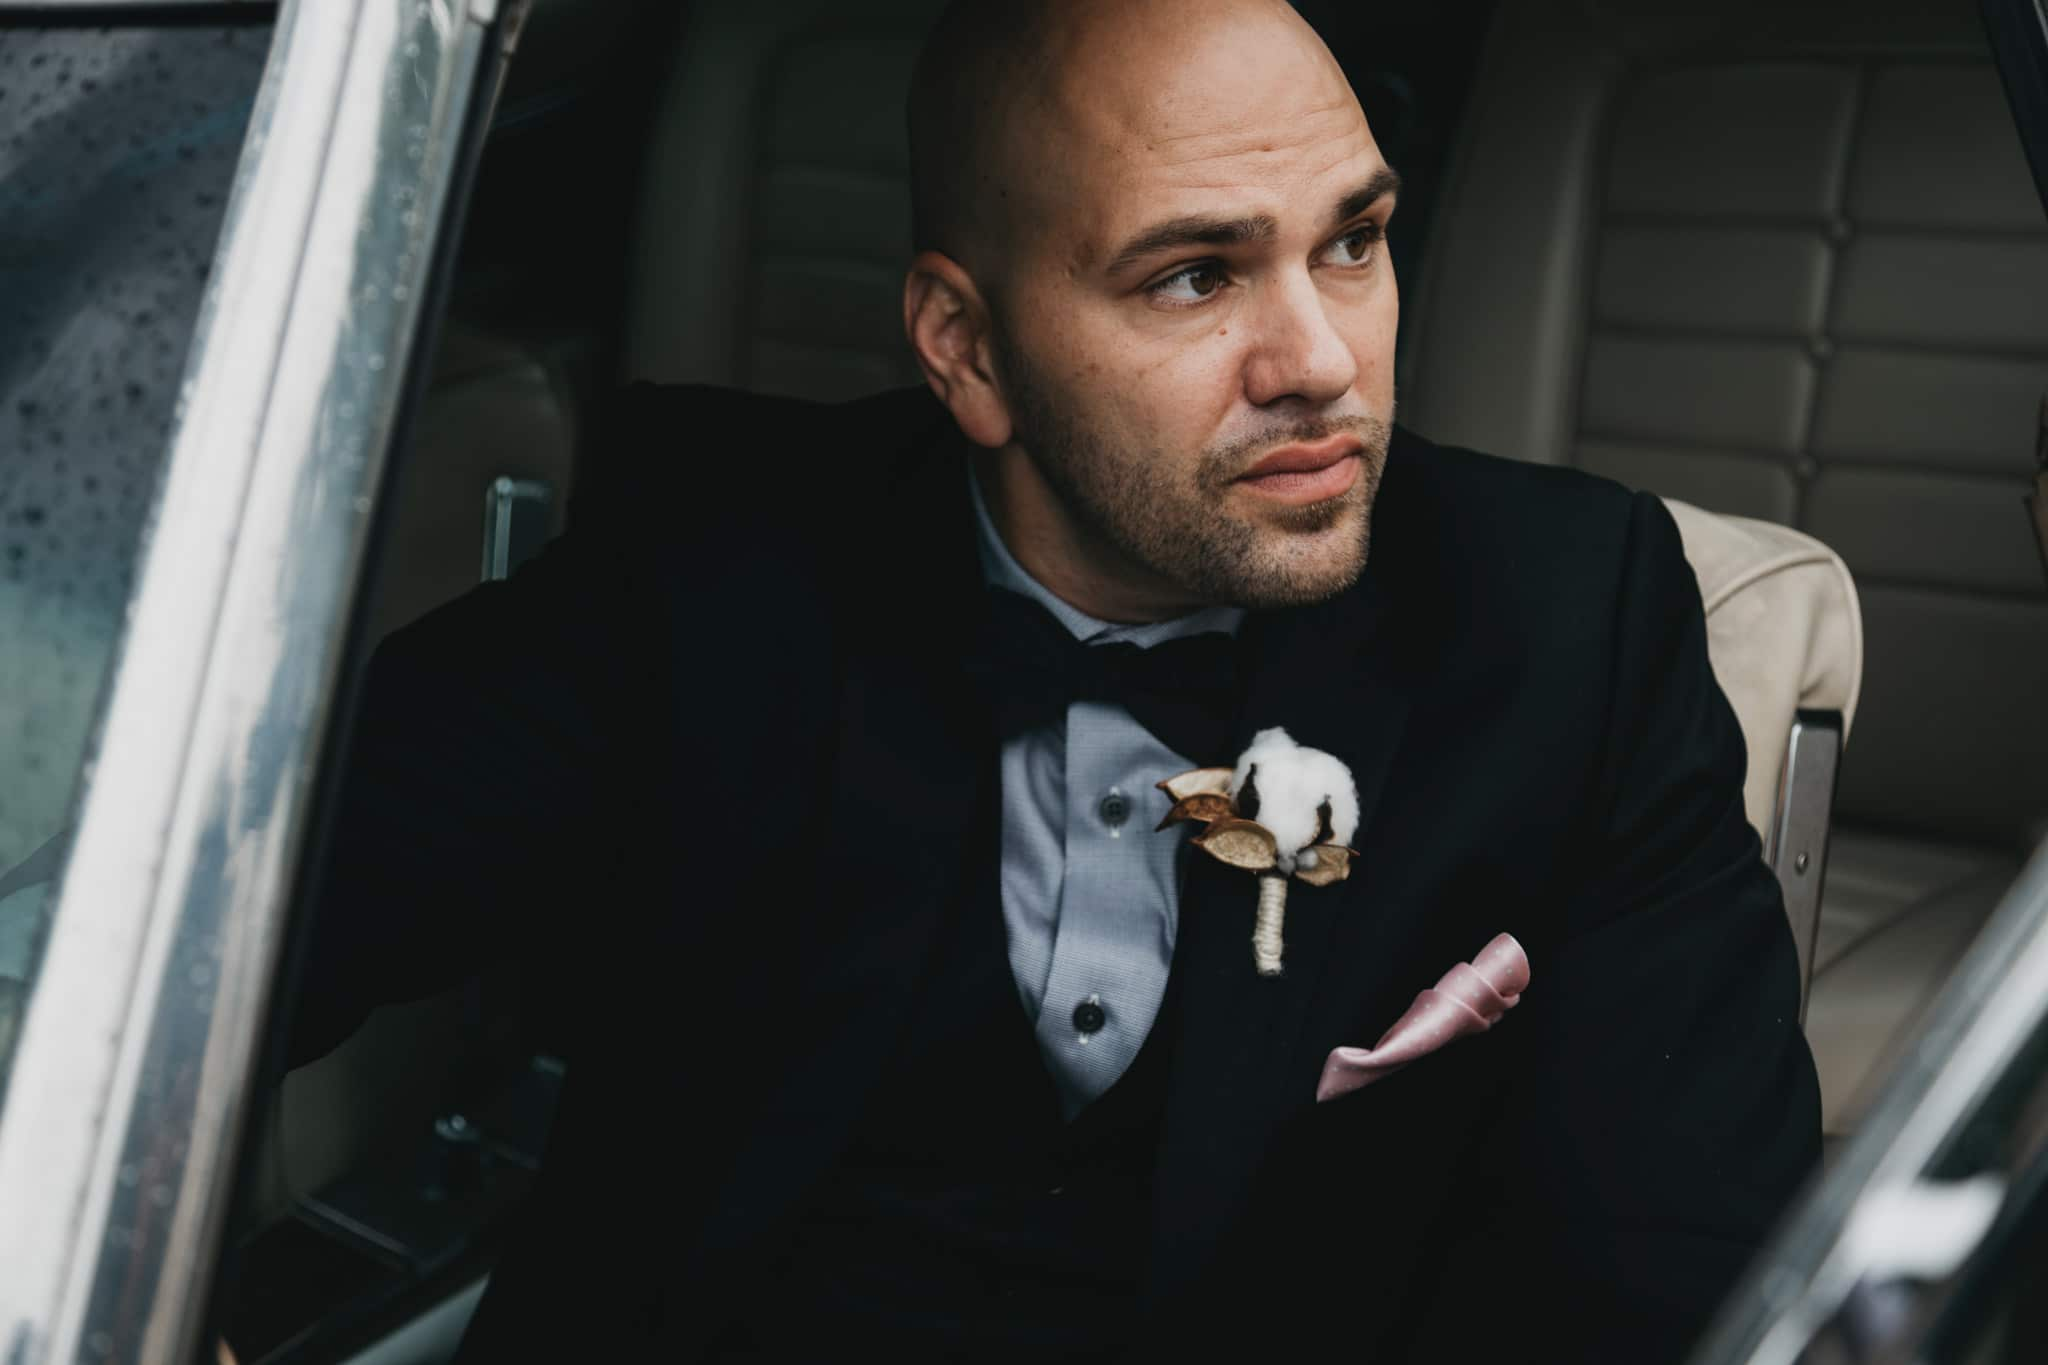 groom waiting in the getaway car